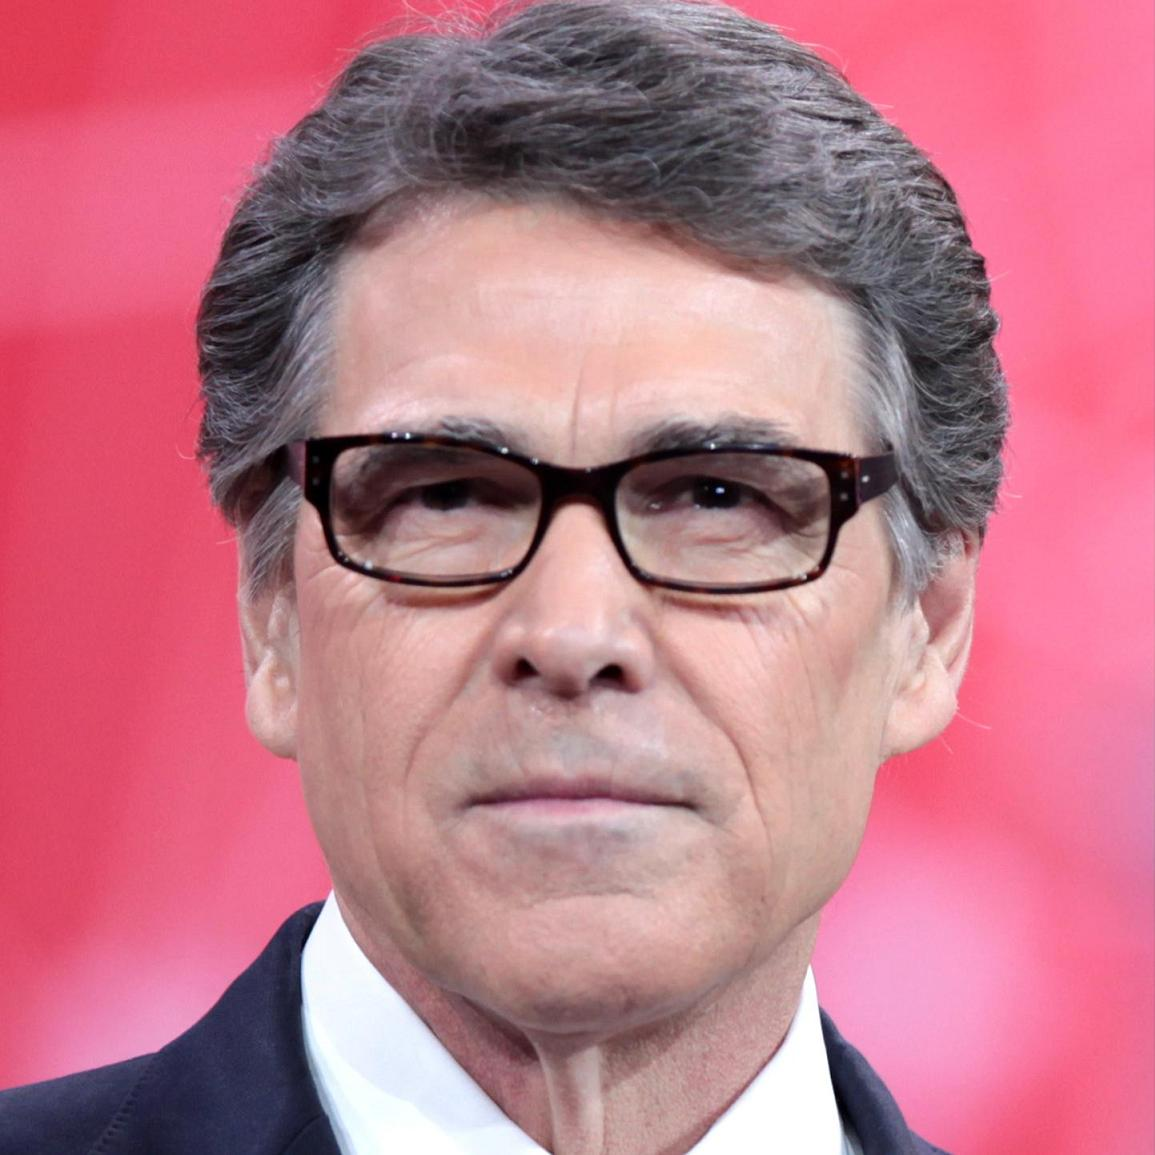 Rick Perry Bio, Net Worth, Facts